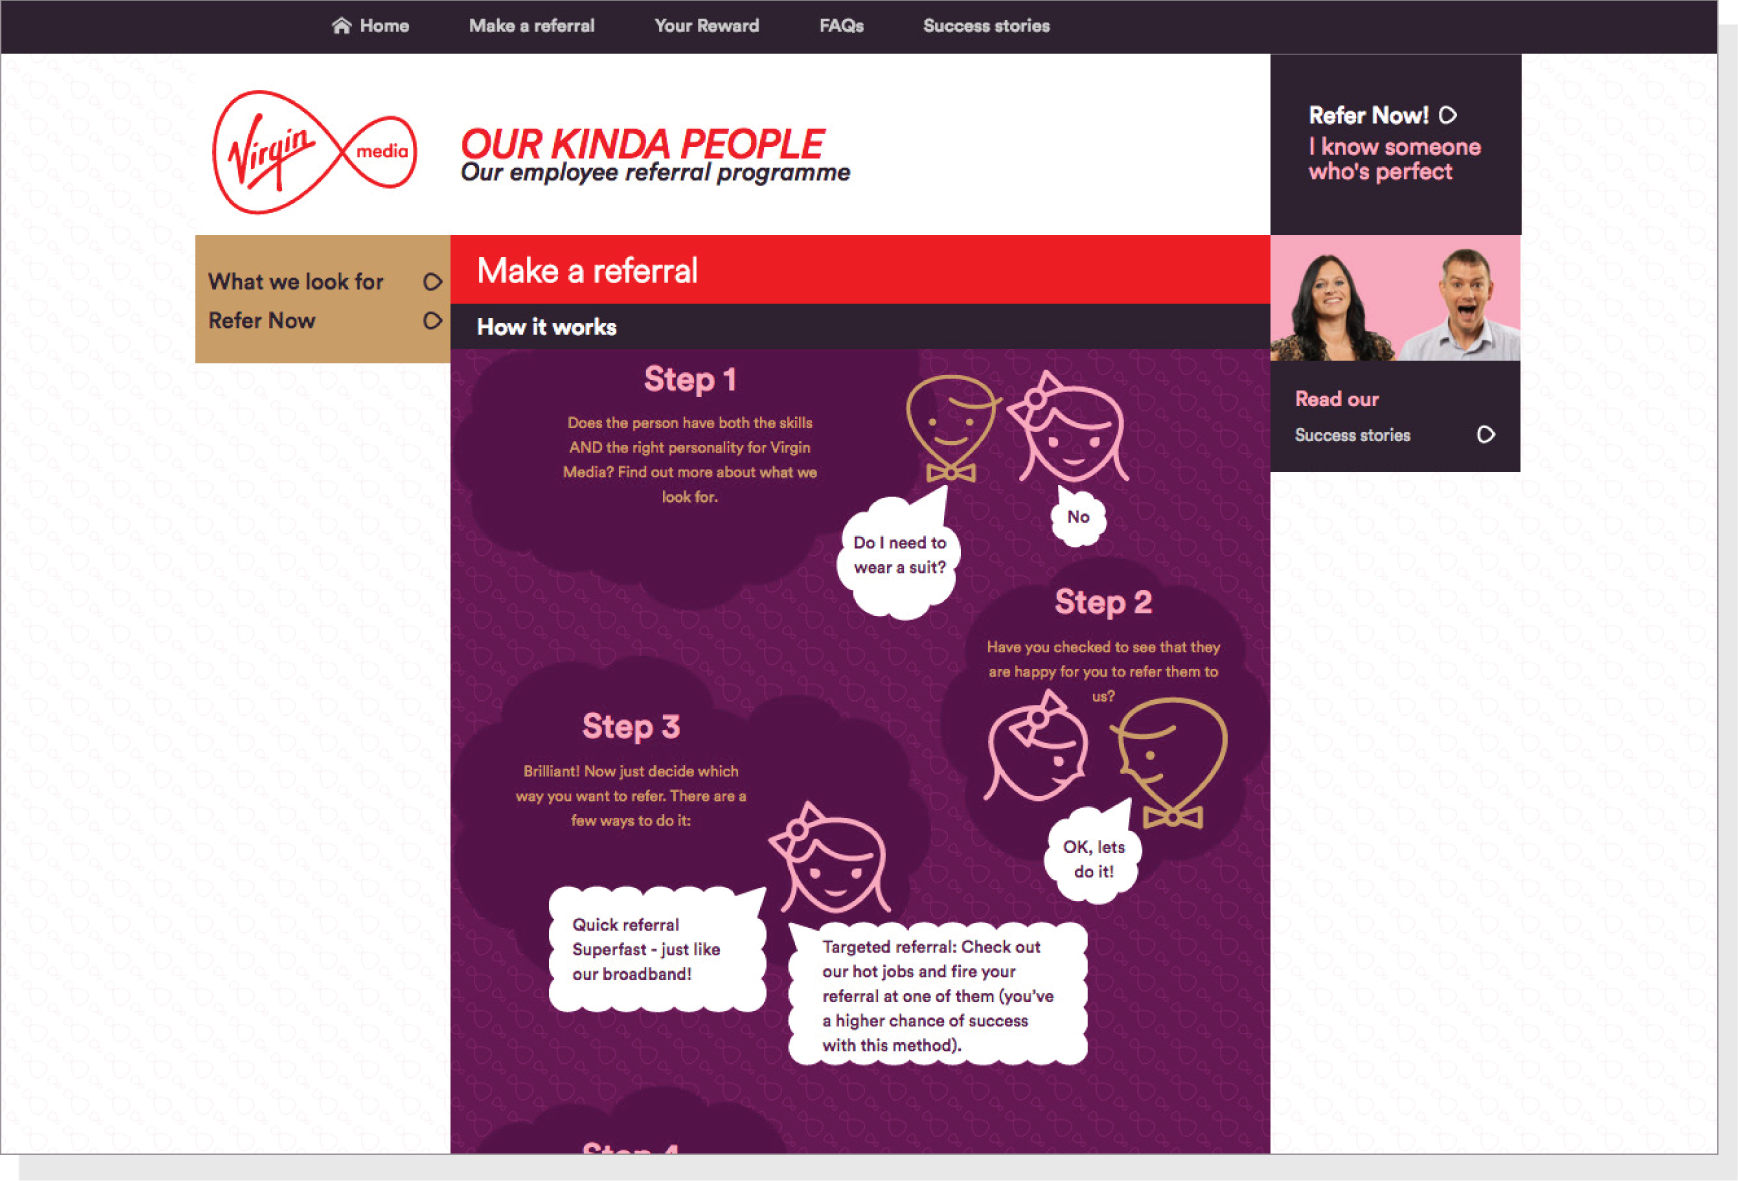 virgin media employee referral website